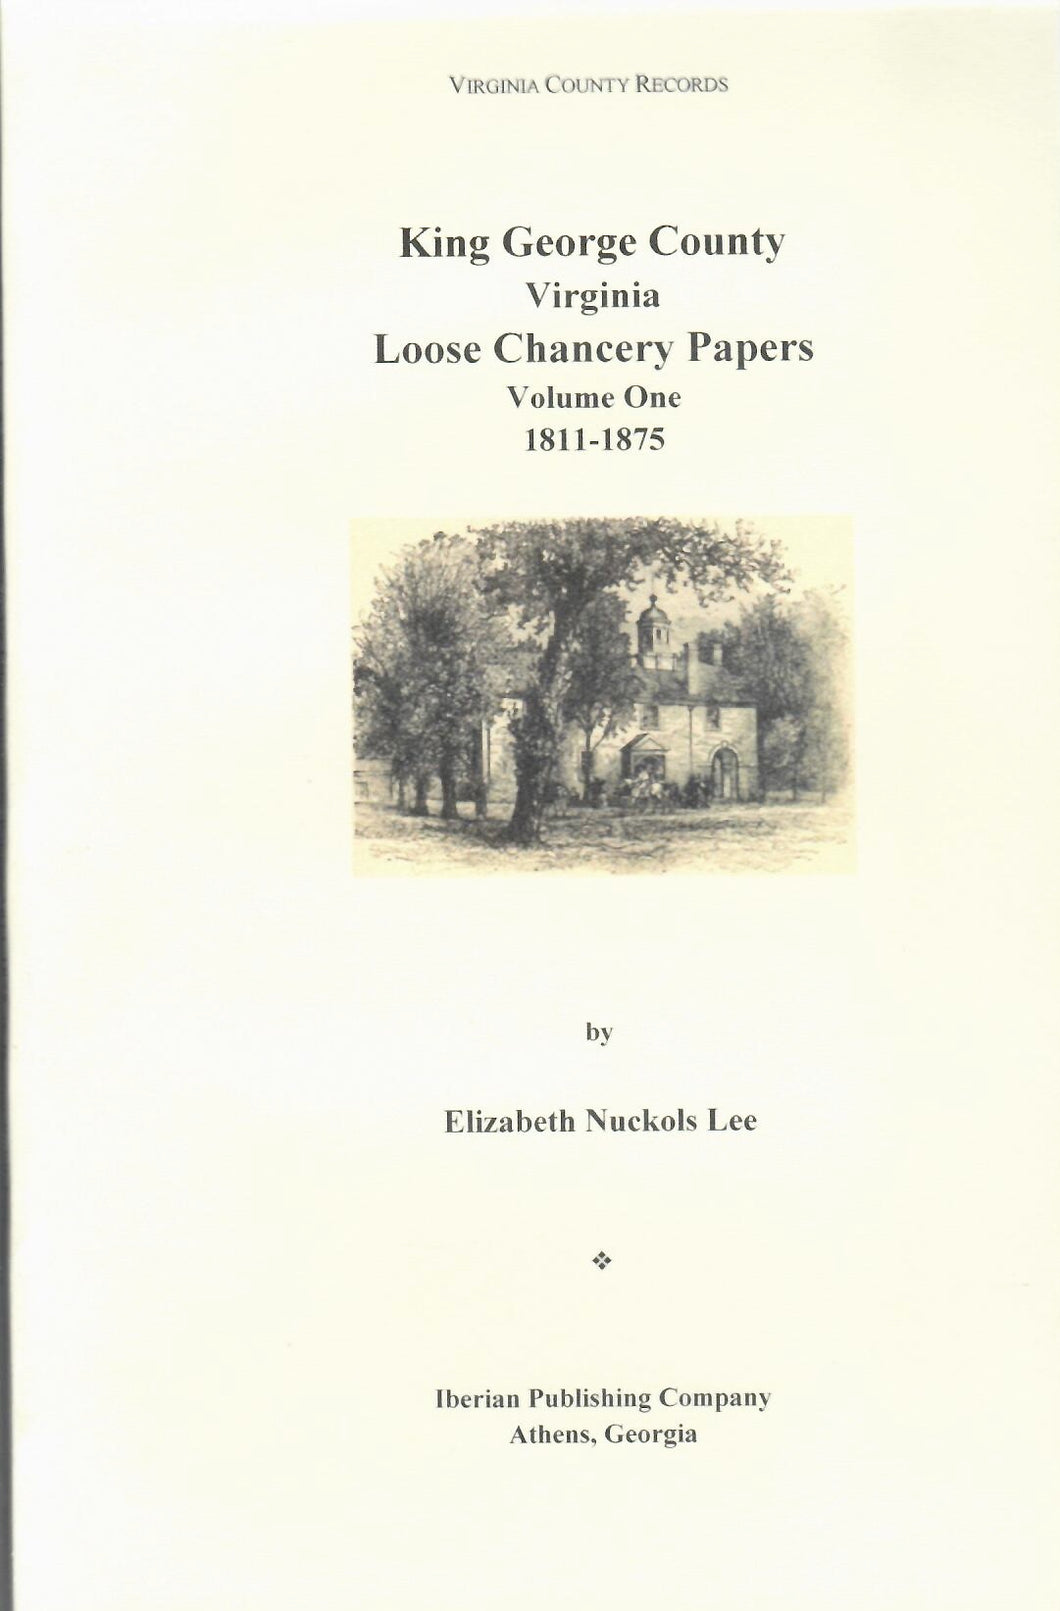 King George County, Virginia Loose Chancery Papers Volume 1: 1811-1875